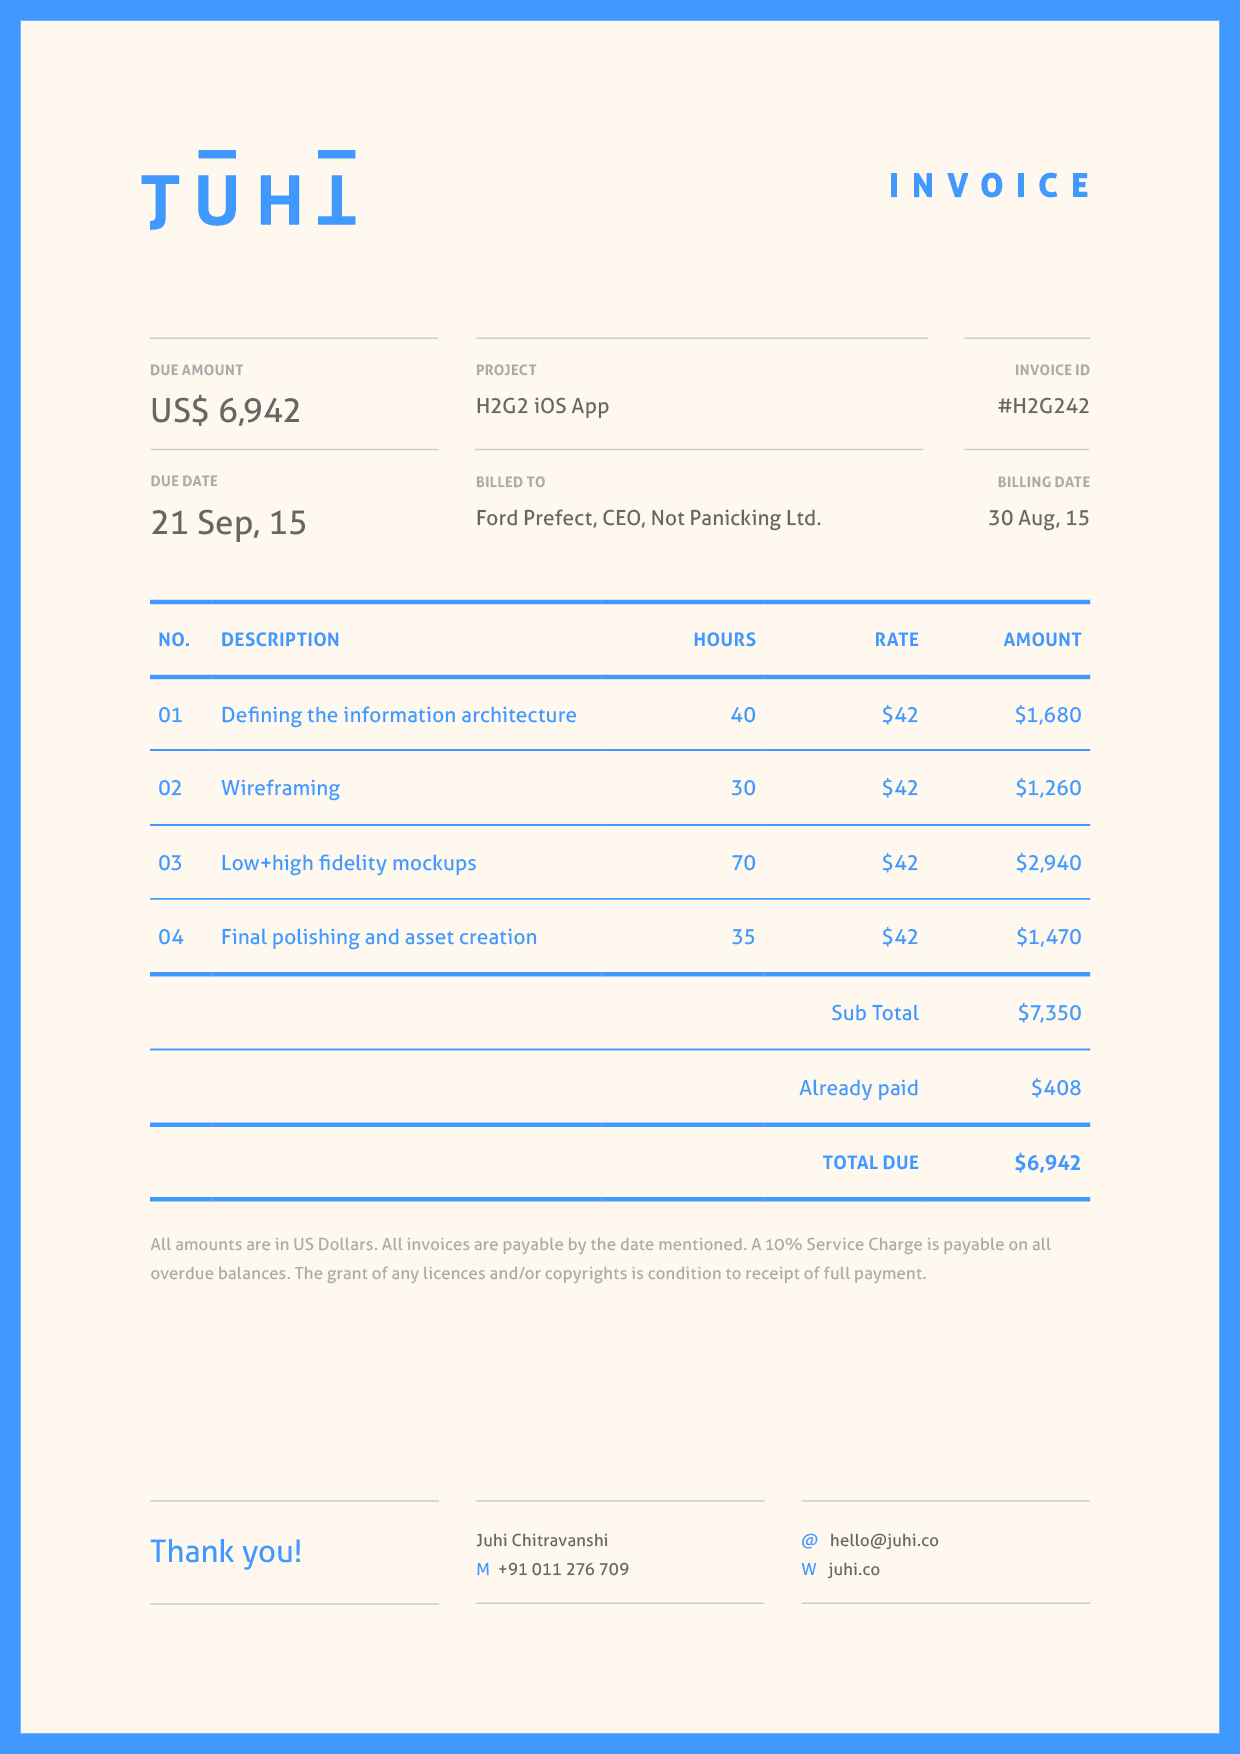 Modaoxus  Unique Dont Hold Back On Your Invoice  Inspiring Designs  With Inspiring Invoice By Juhi Chitravanshi Follow With Enchanting Invoice Form Template Also Invoice App For Android In Addition Toll Invoice And Send Invoices As Well As Fake Invoice Generator Additionally Service Invoices From Inspirationfeedcom With Modaoxus  Inspiring Dont Hold Back On Your Invoice  Inspiring Designs  With Enchanting Invoice By Juhi Chitravanshi Follow And Unique Invoice Form Template Also Invoice App For Android In Addition Toll Invoice From Inspirationfeedcom